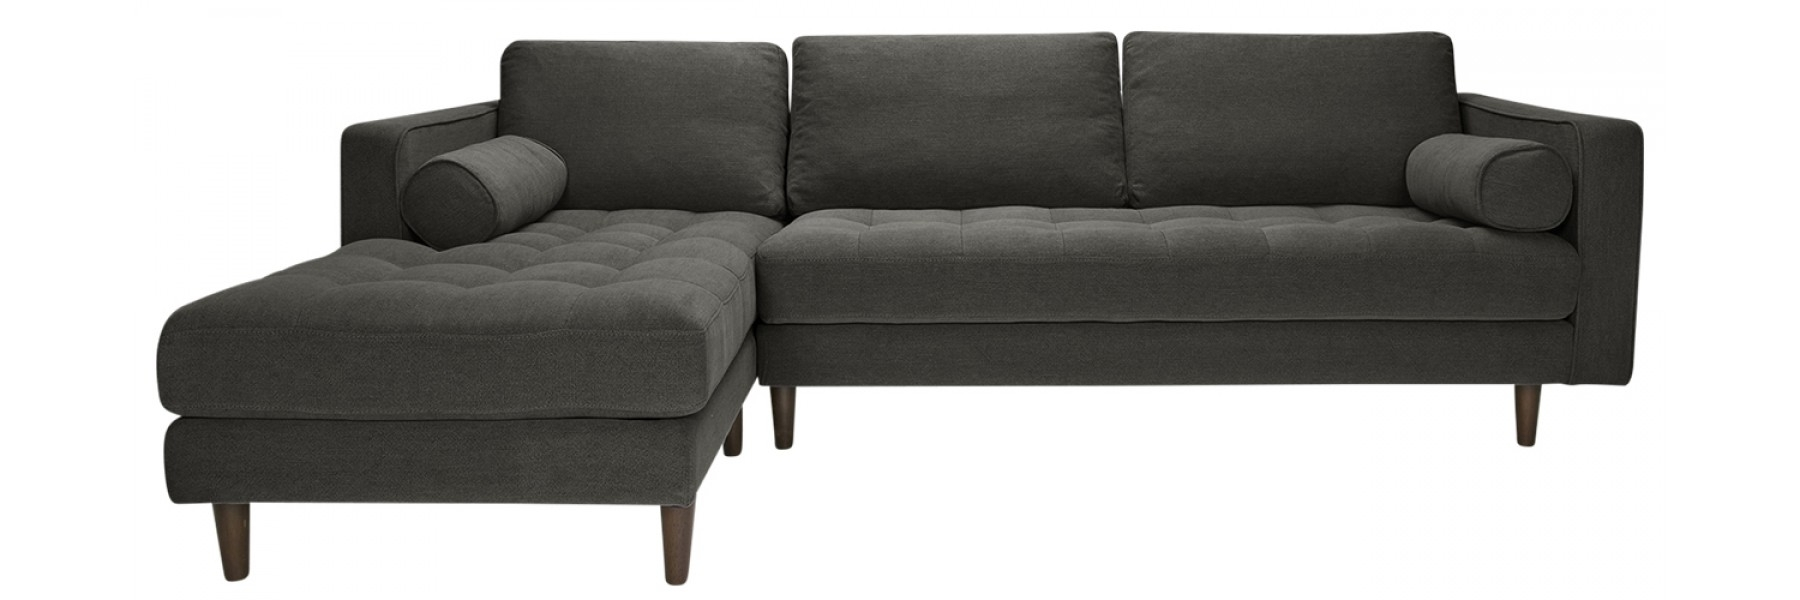 Sawyer Laf Sectional Stoned Slate within Harper Foam 3 Piece Sectionals With Raf Chaise (Image 19 of 30)